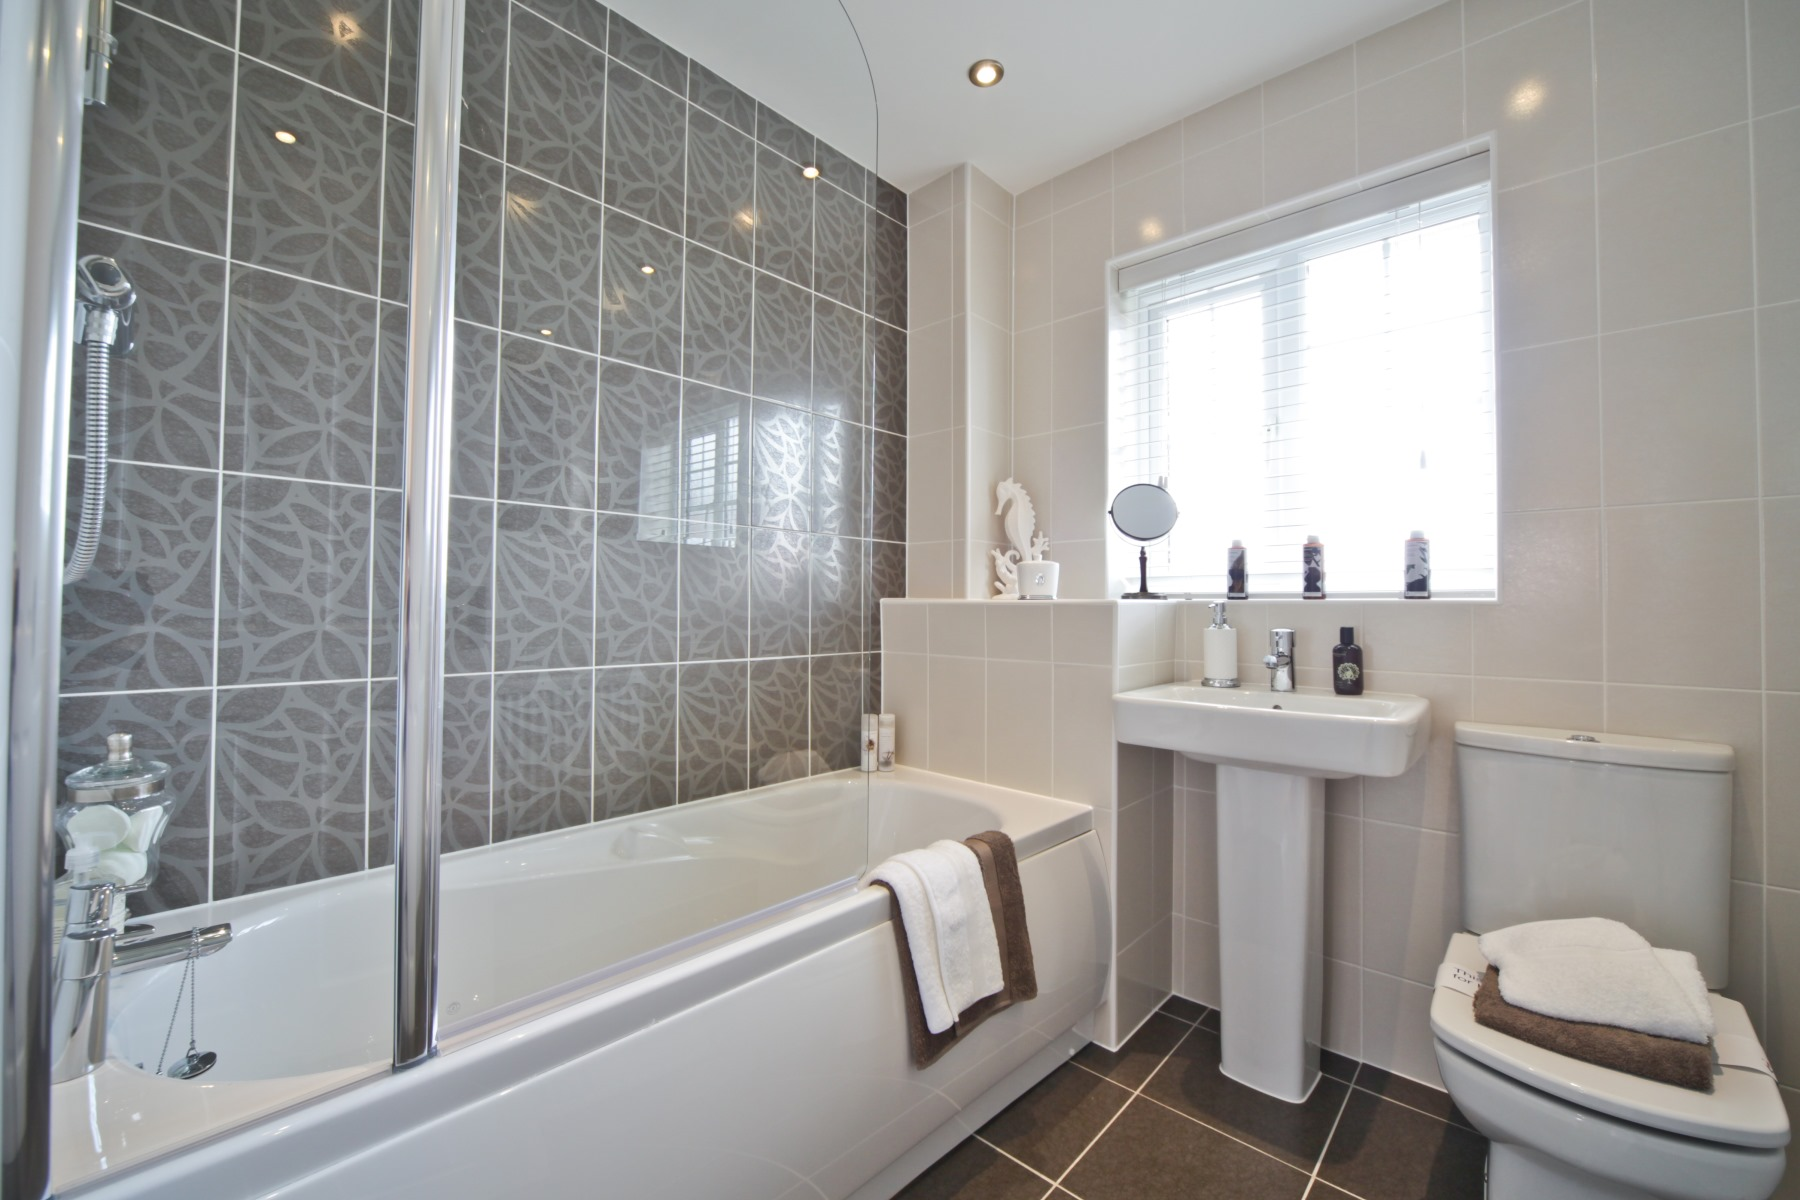 Knutsford Showhome - Bathroom